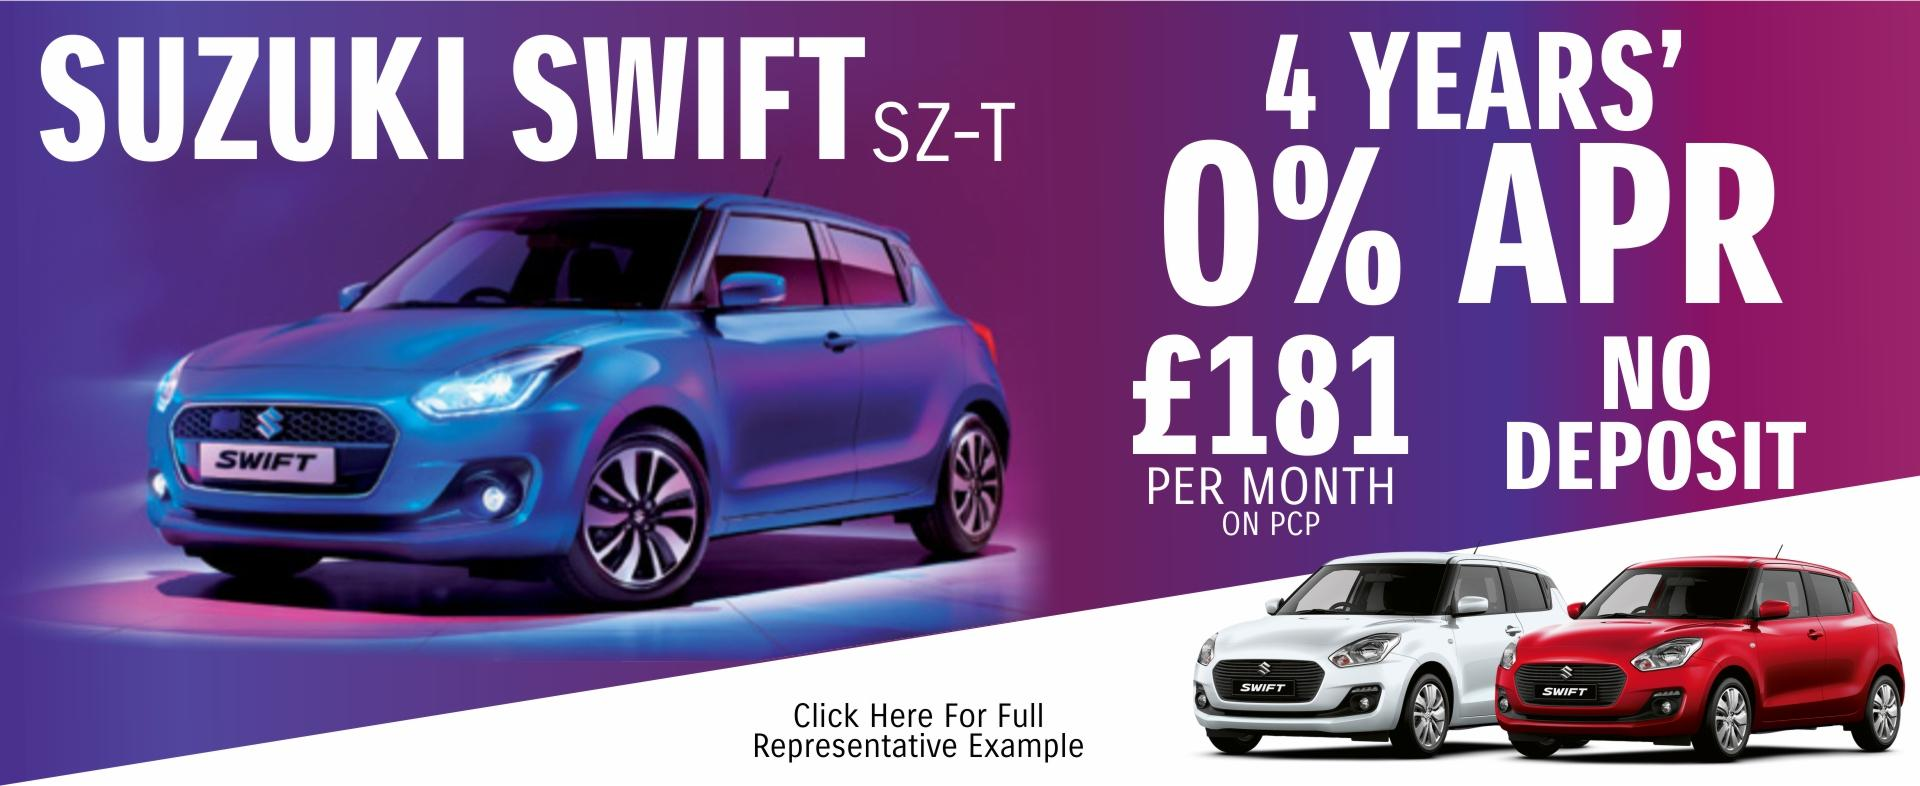 Q2 Swift offer